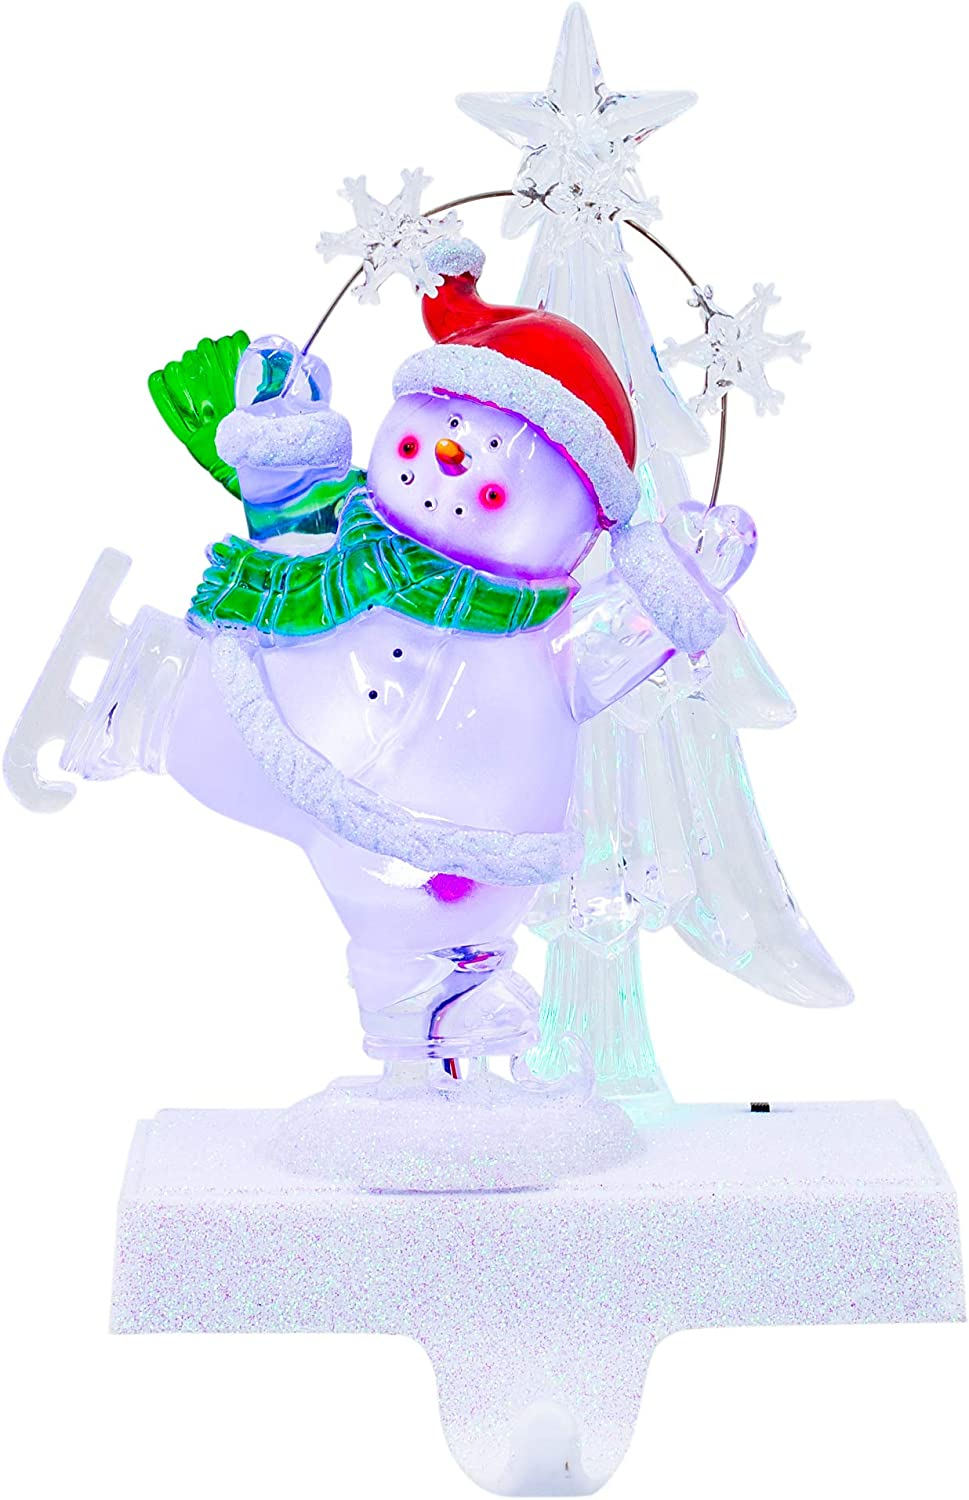 LED Skating Tucson Mall Snowman Winter White 9 Acrylic Super Special SALE held Stocking x 6 Holiday